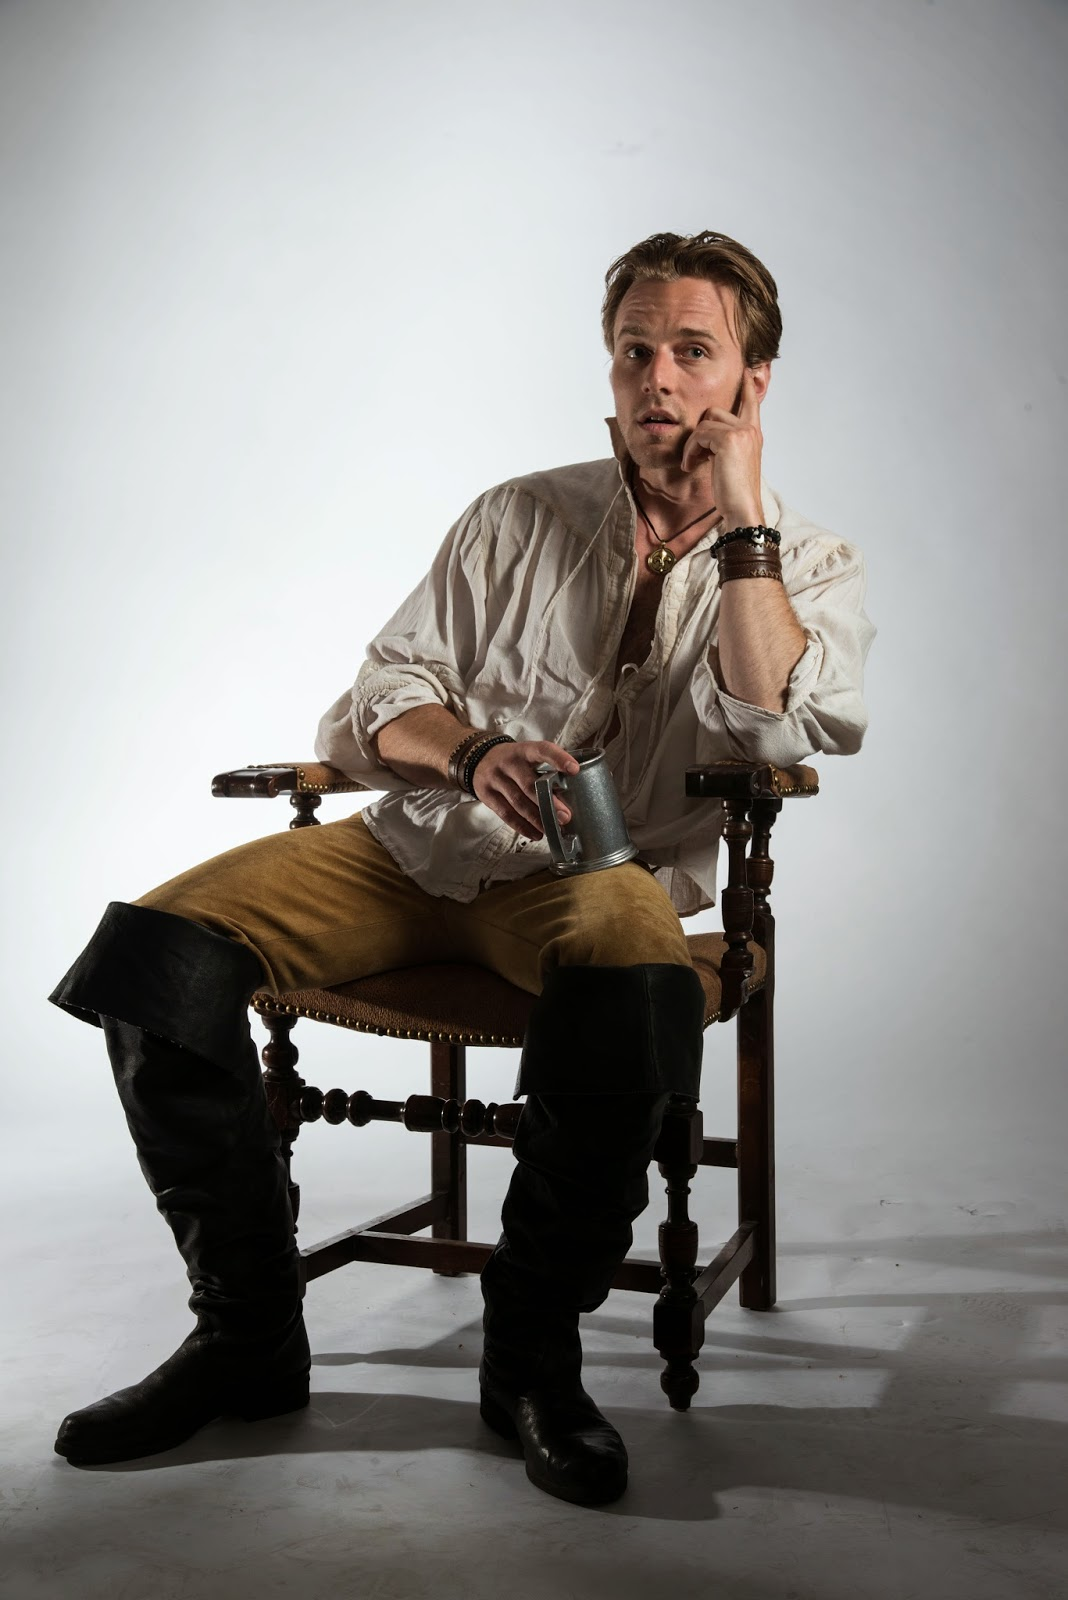 Ashdown as Prince Hal